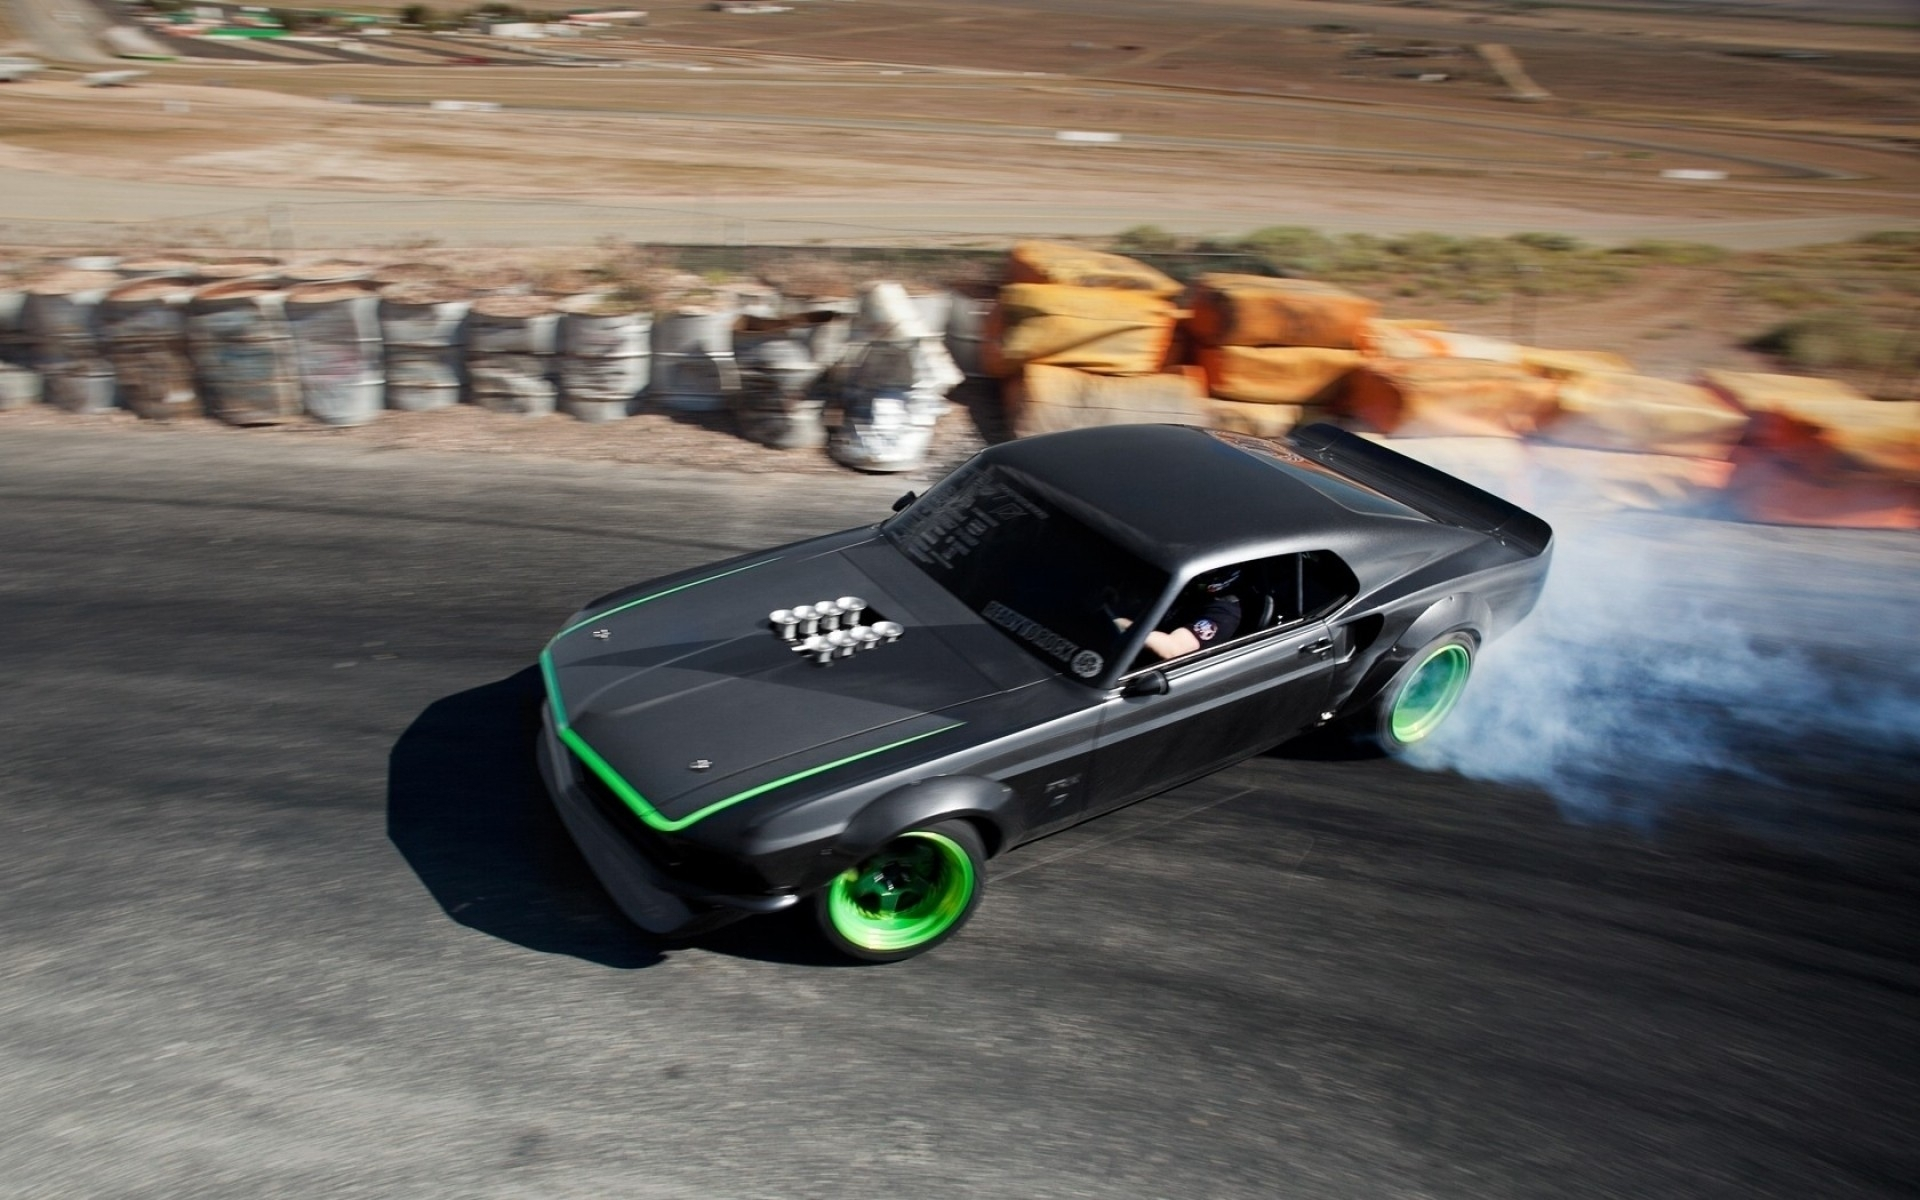 Ford mustang hot rod classic muscle cars racing drift tuning race ...